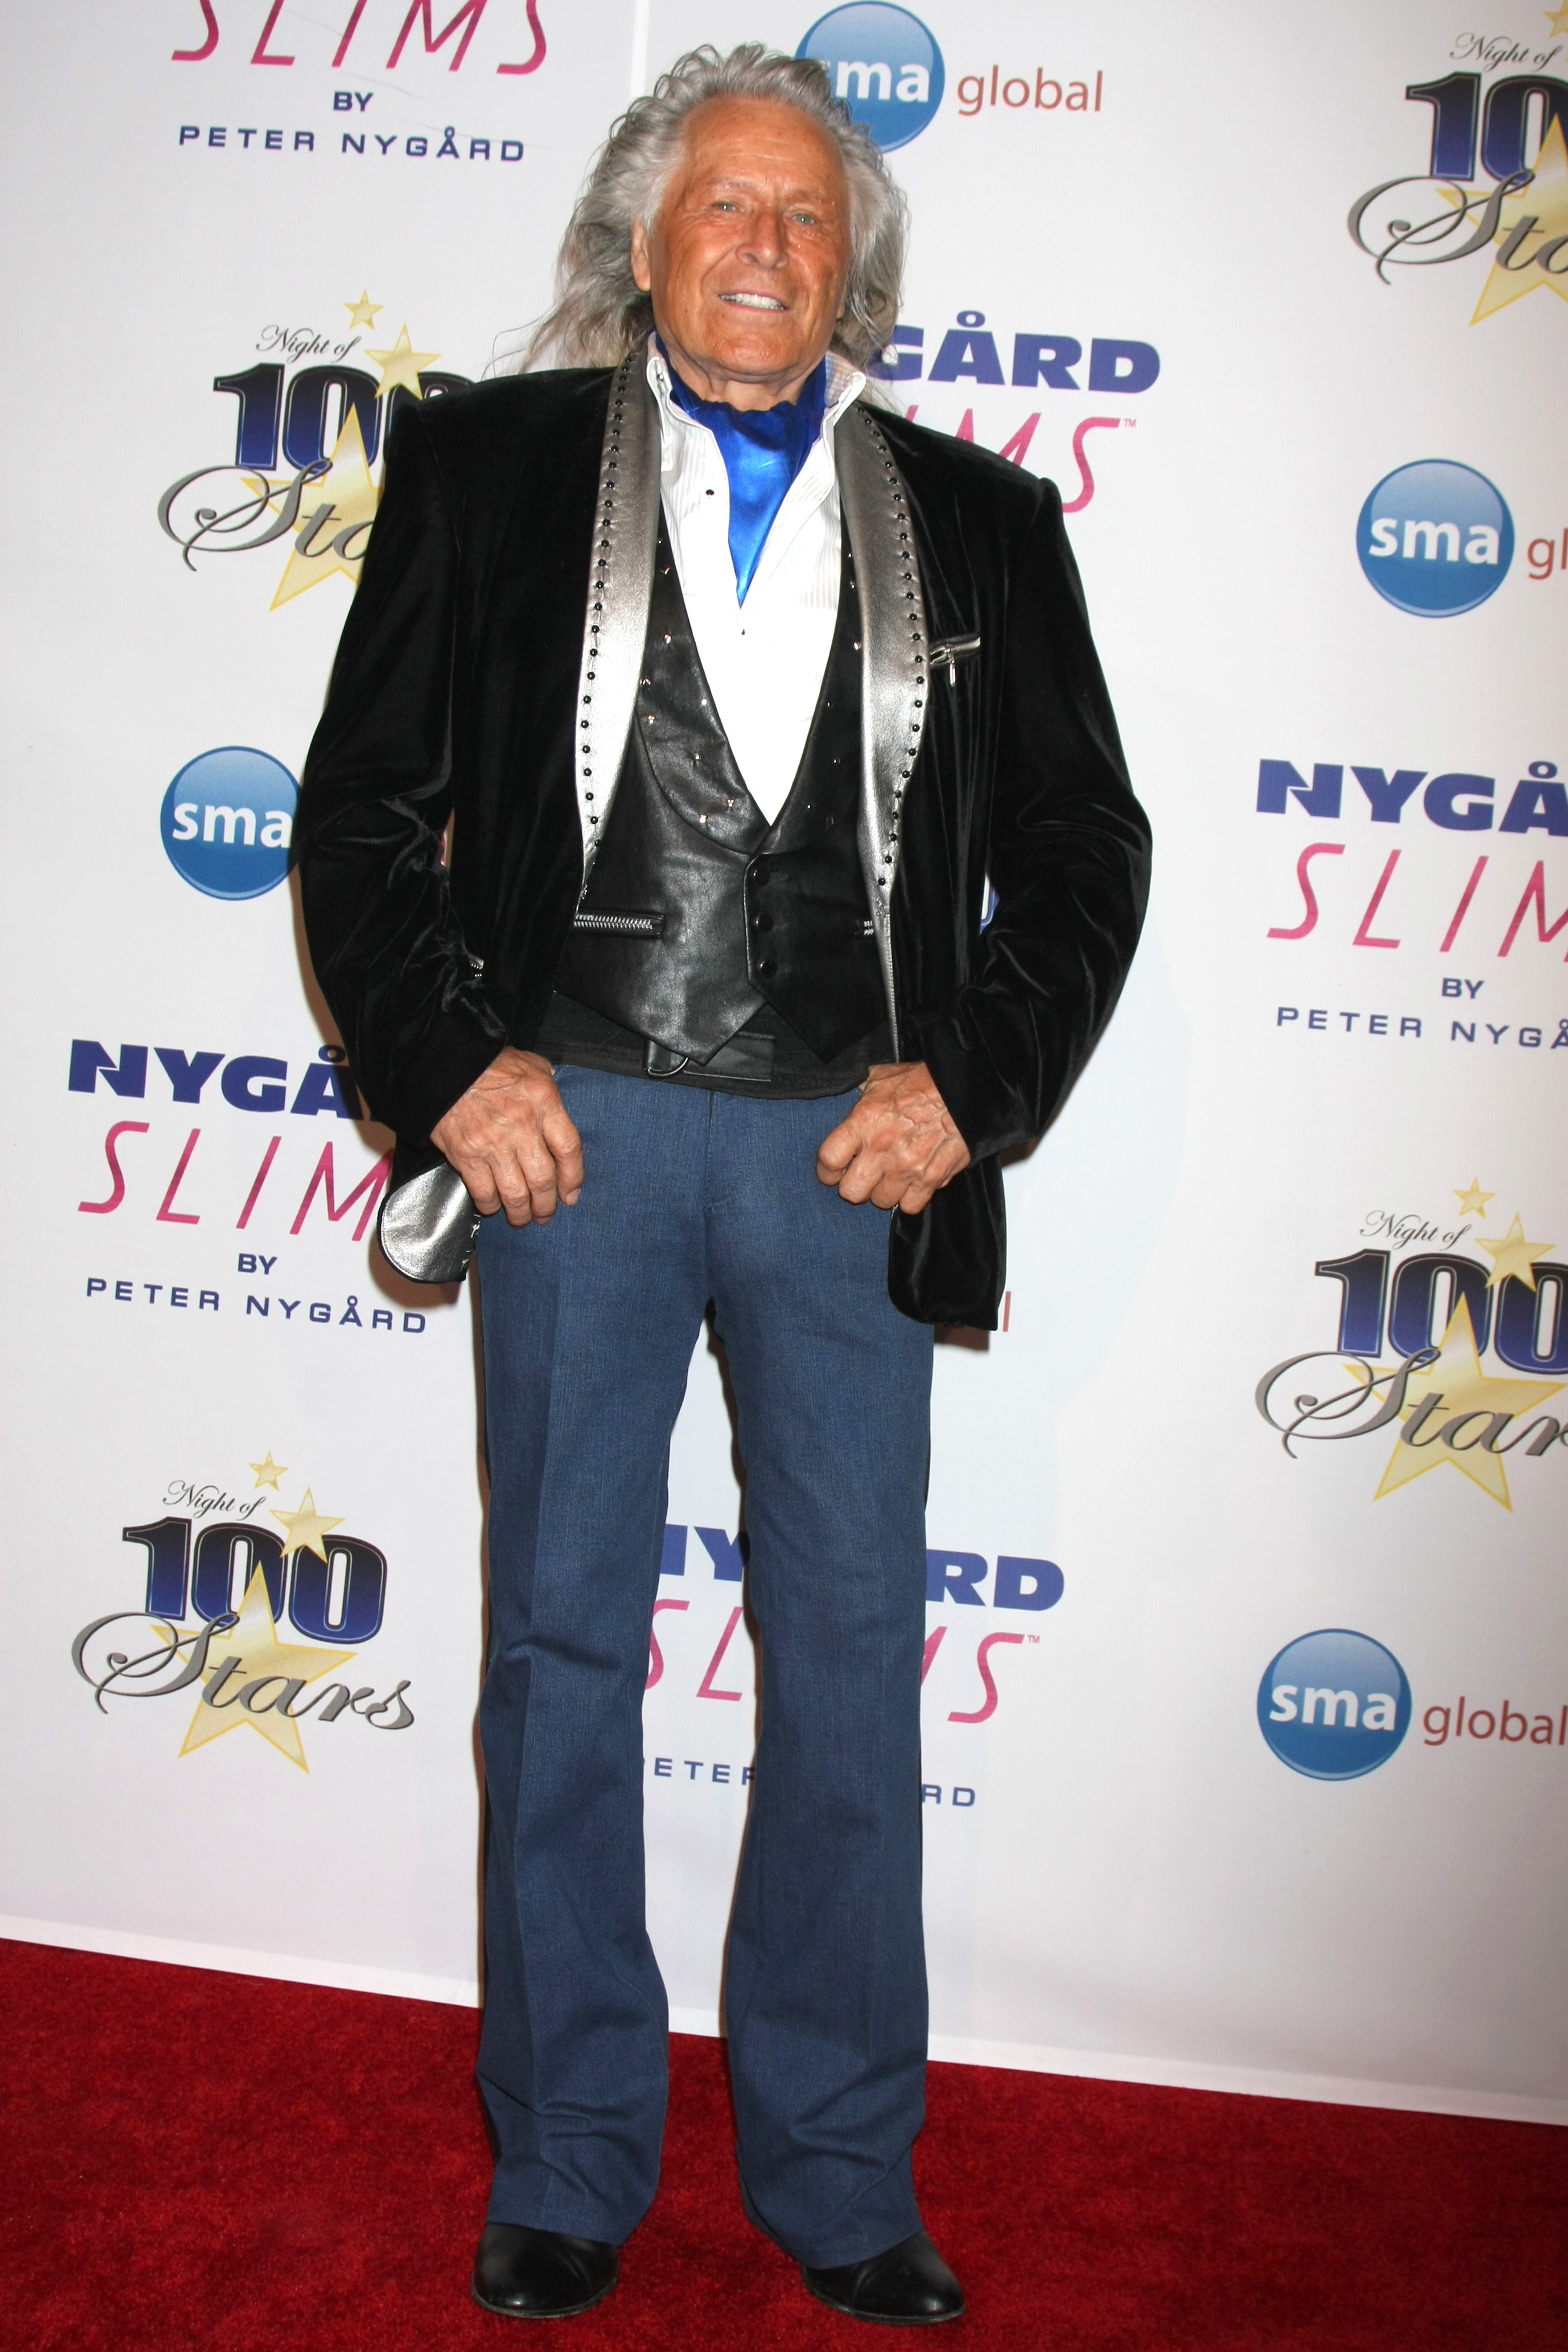 **FILE PHOTO** Peter Nygard Indicted on federal sex-trafficking and racketeering charges. BEVERLY HILLS, CA - FEBRUARY 22: Peter Nygard at the 25th Annual Night of 100 Stars Oscar Viewing Gala at the Beverly Hilton in Beverly Hills, California on February 22, 2015. Credit: David Edwards/MediaPunch /IPX